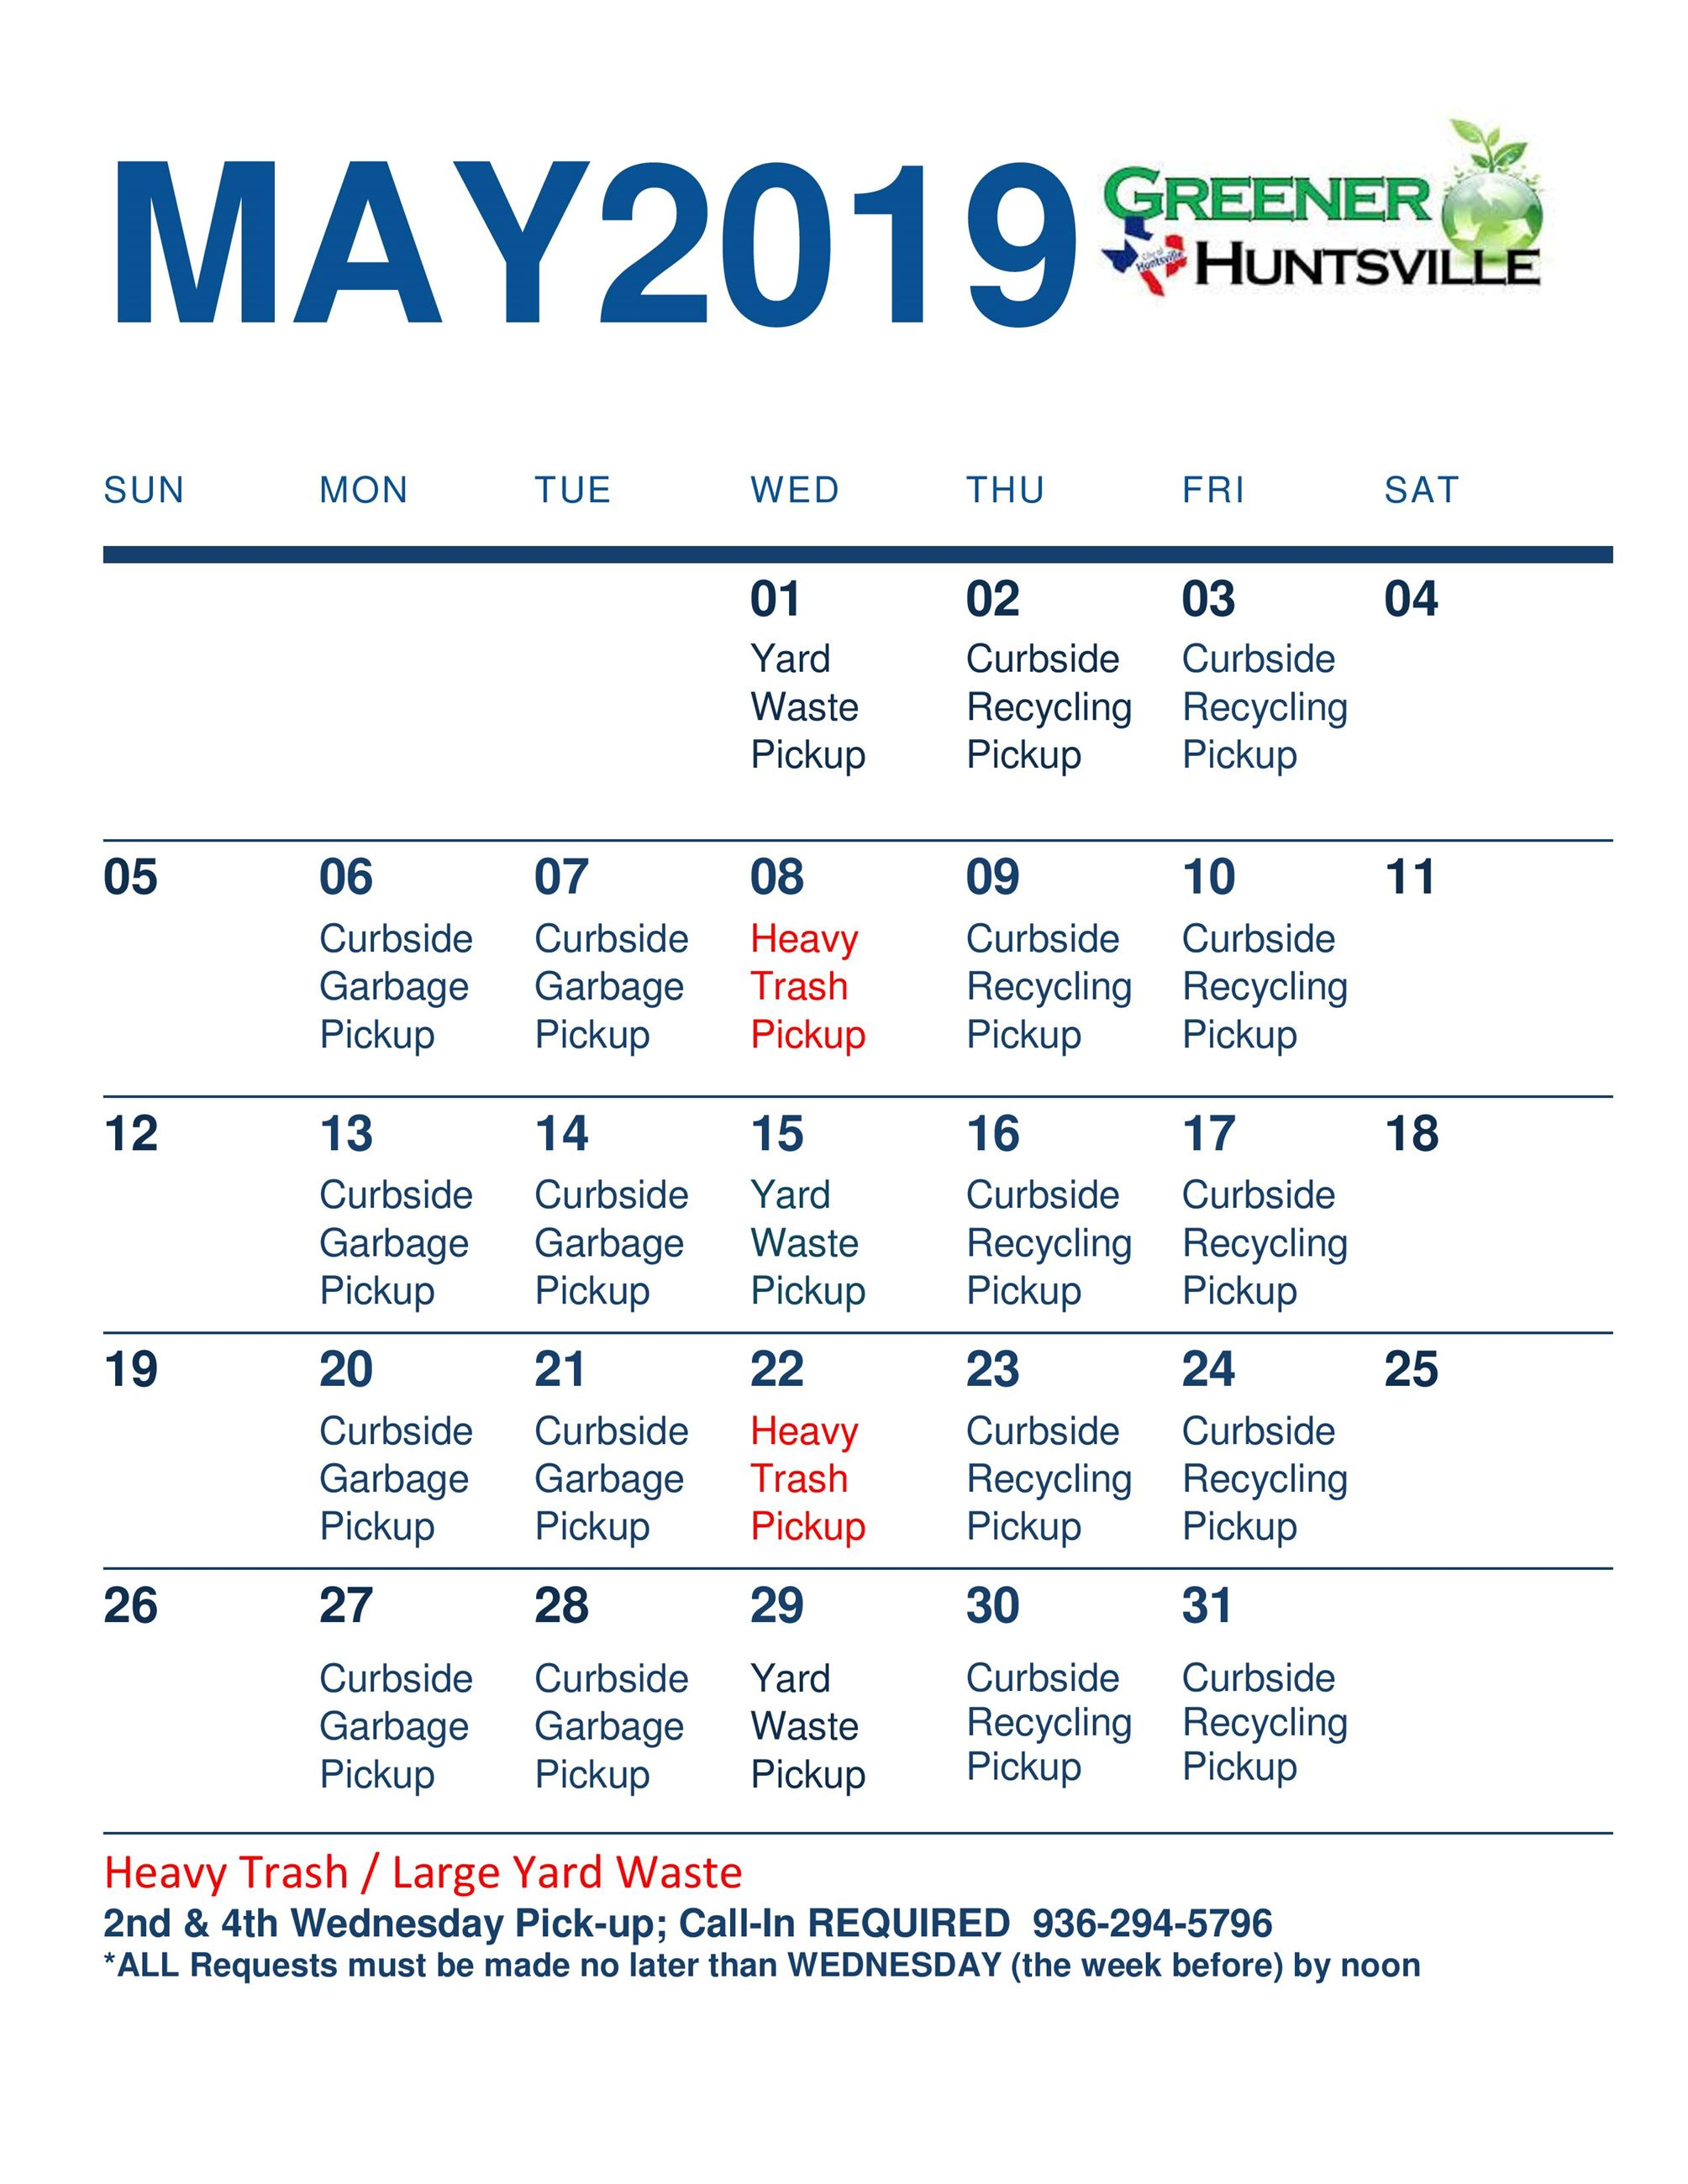 May 2019 Solid Waste Pickup schedule